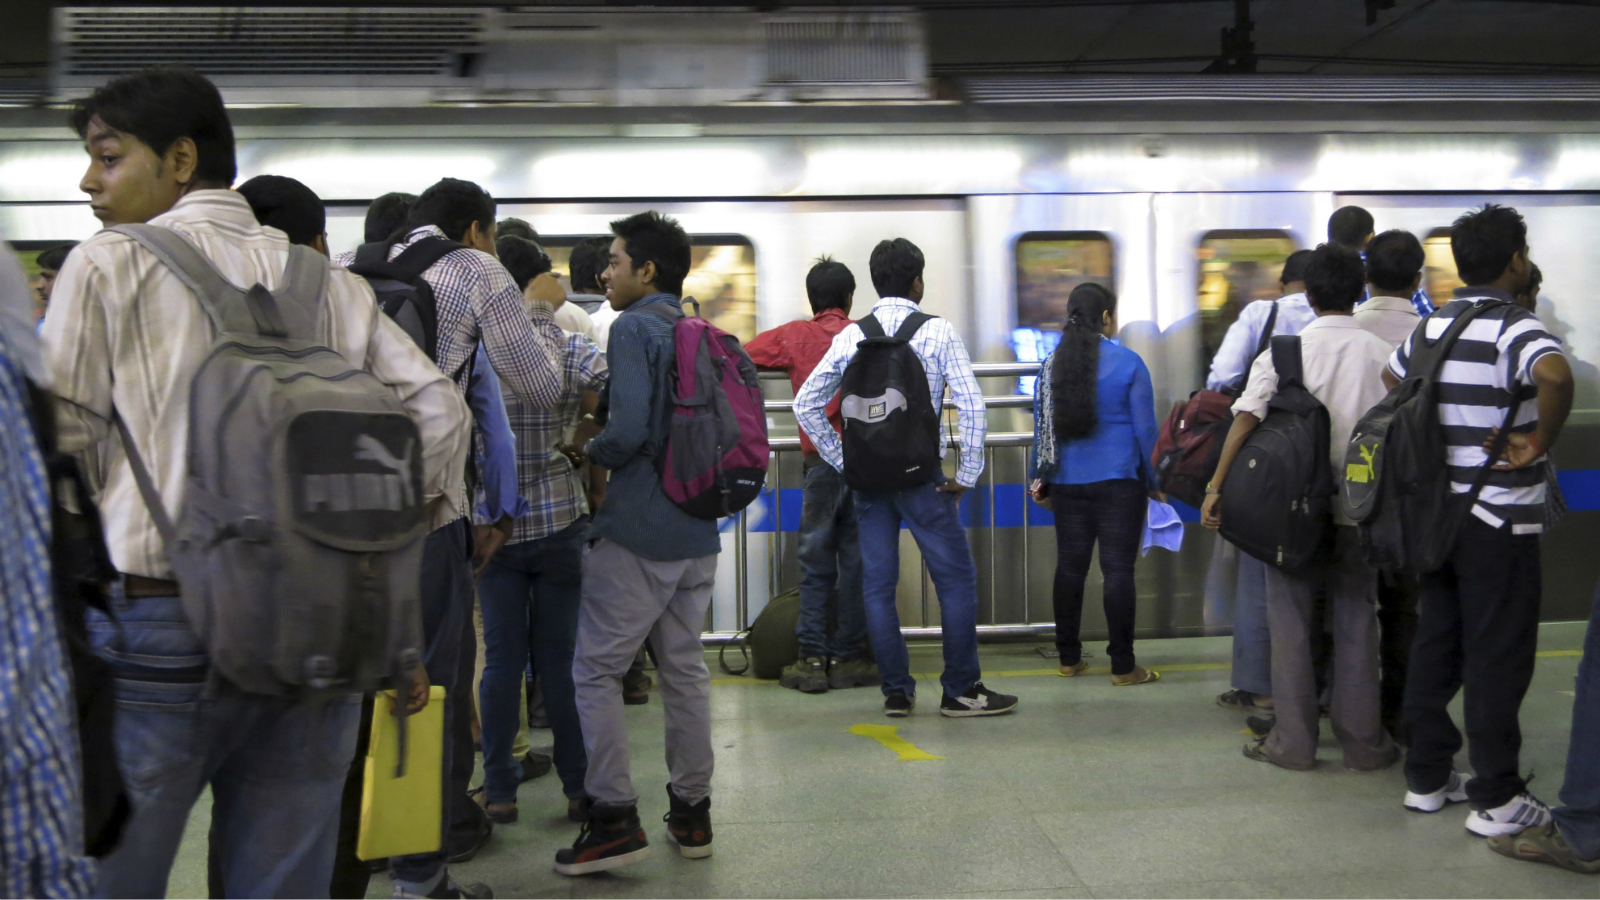 An metro train pulls into a station as an Indian woman waits to board it, surrounded by men in New Delhi, a city fast acquiring an image of being unsafe for women, India, Friday, Sept. 13, 2013. An Indian judge is expected to hand down sentences Friday in the fatal gang rape of a young woman on a New Delhi bus, with the prosecutor and others calling for the four convicted rapists to be executed. The men were convicted Tuesday in the December attack of the 23-year-old woman, a brutal crime that unleashed a wave of public anger over the treatment of women in India. (AP Photo/Yirmiyan Arthur)